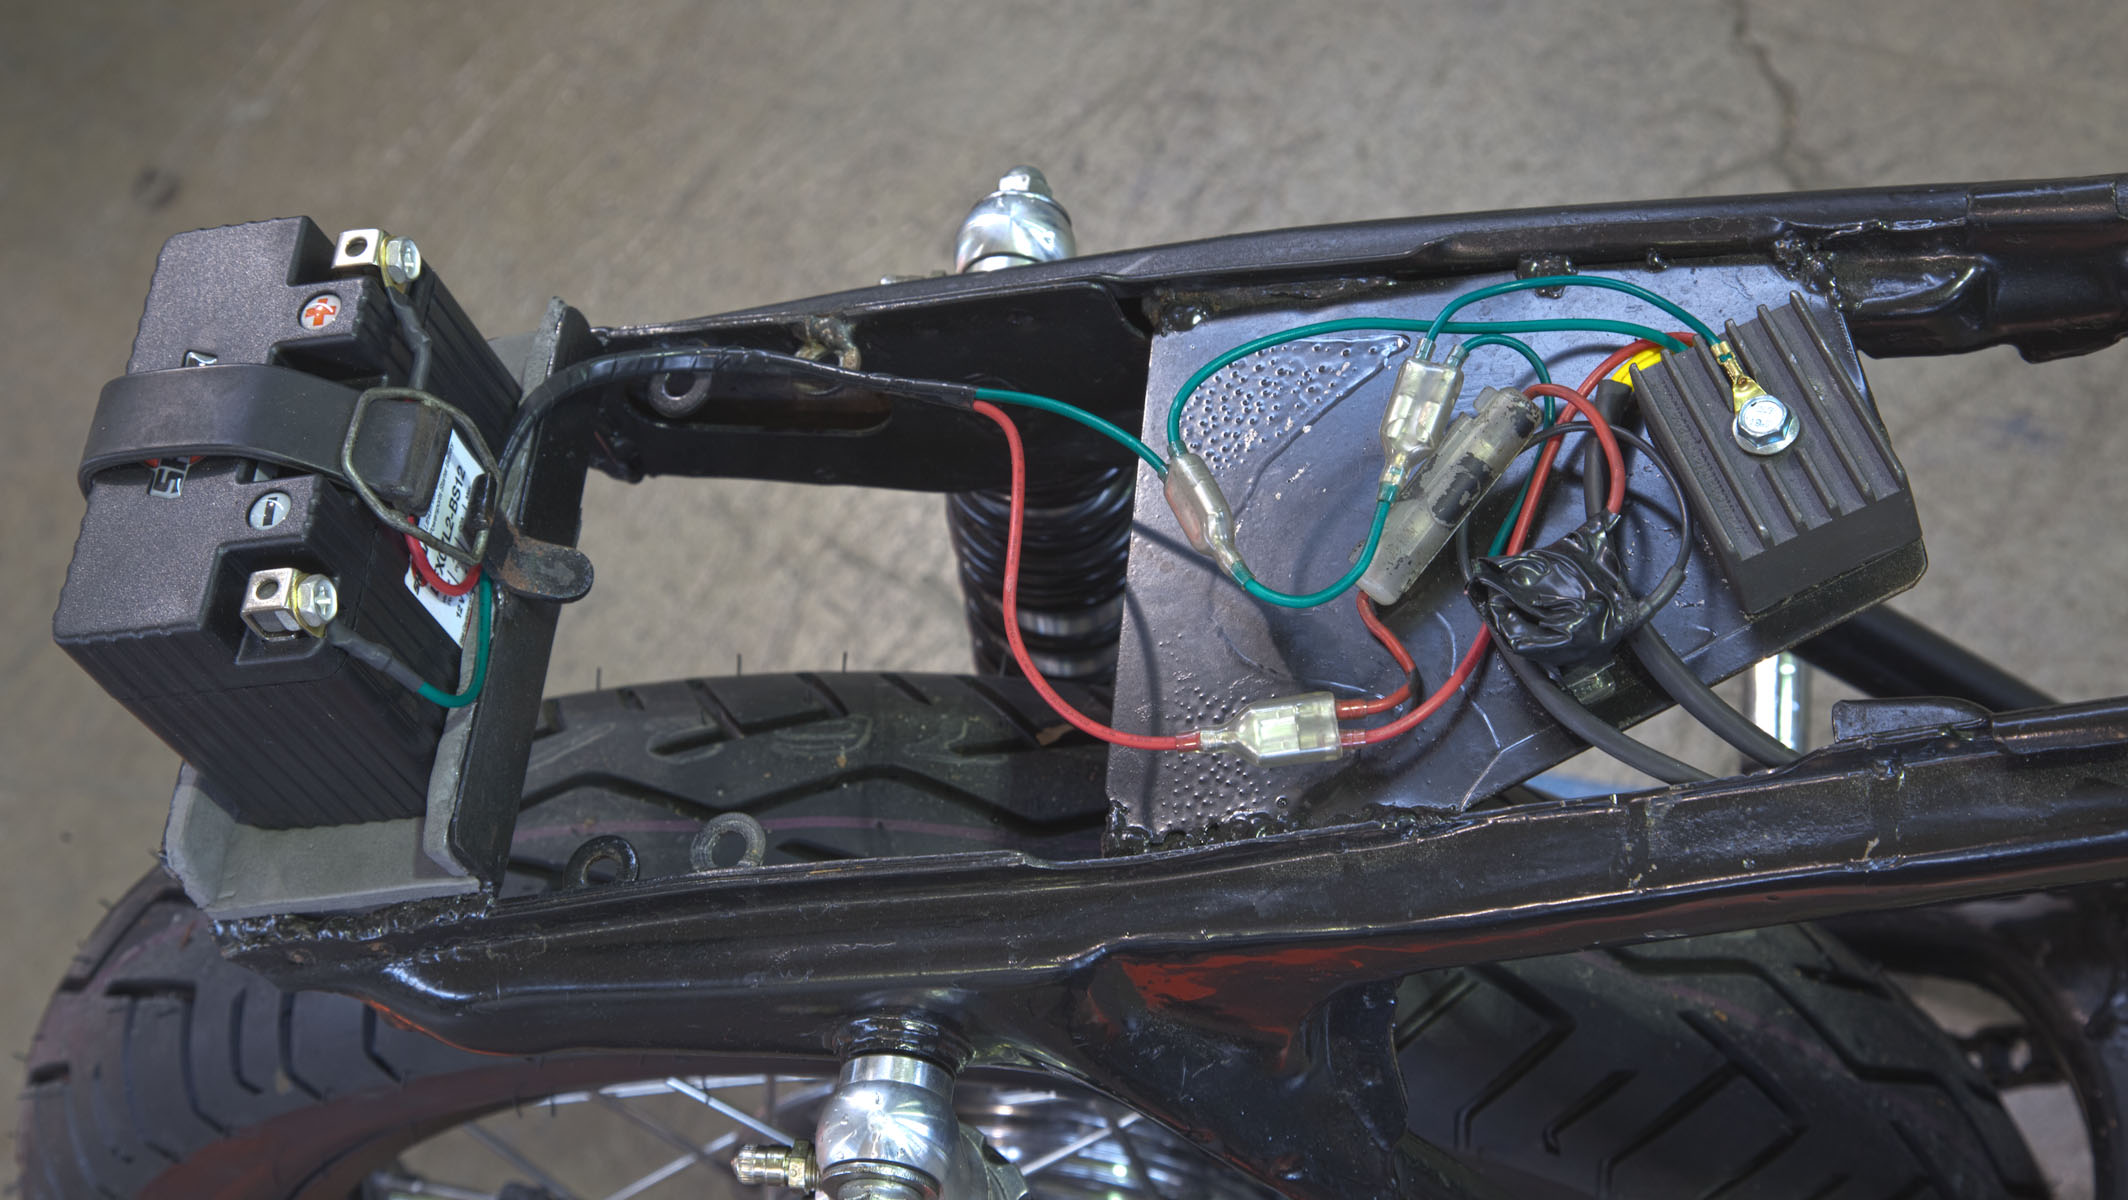 Cb350 Wiring Harness 20 Diagram Images Diagrams 1969 012412 2 Md Project Cafe Racer Part Iv Motorcycledaily Com At